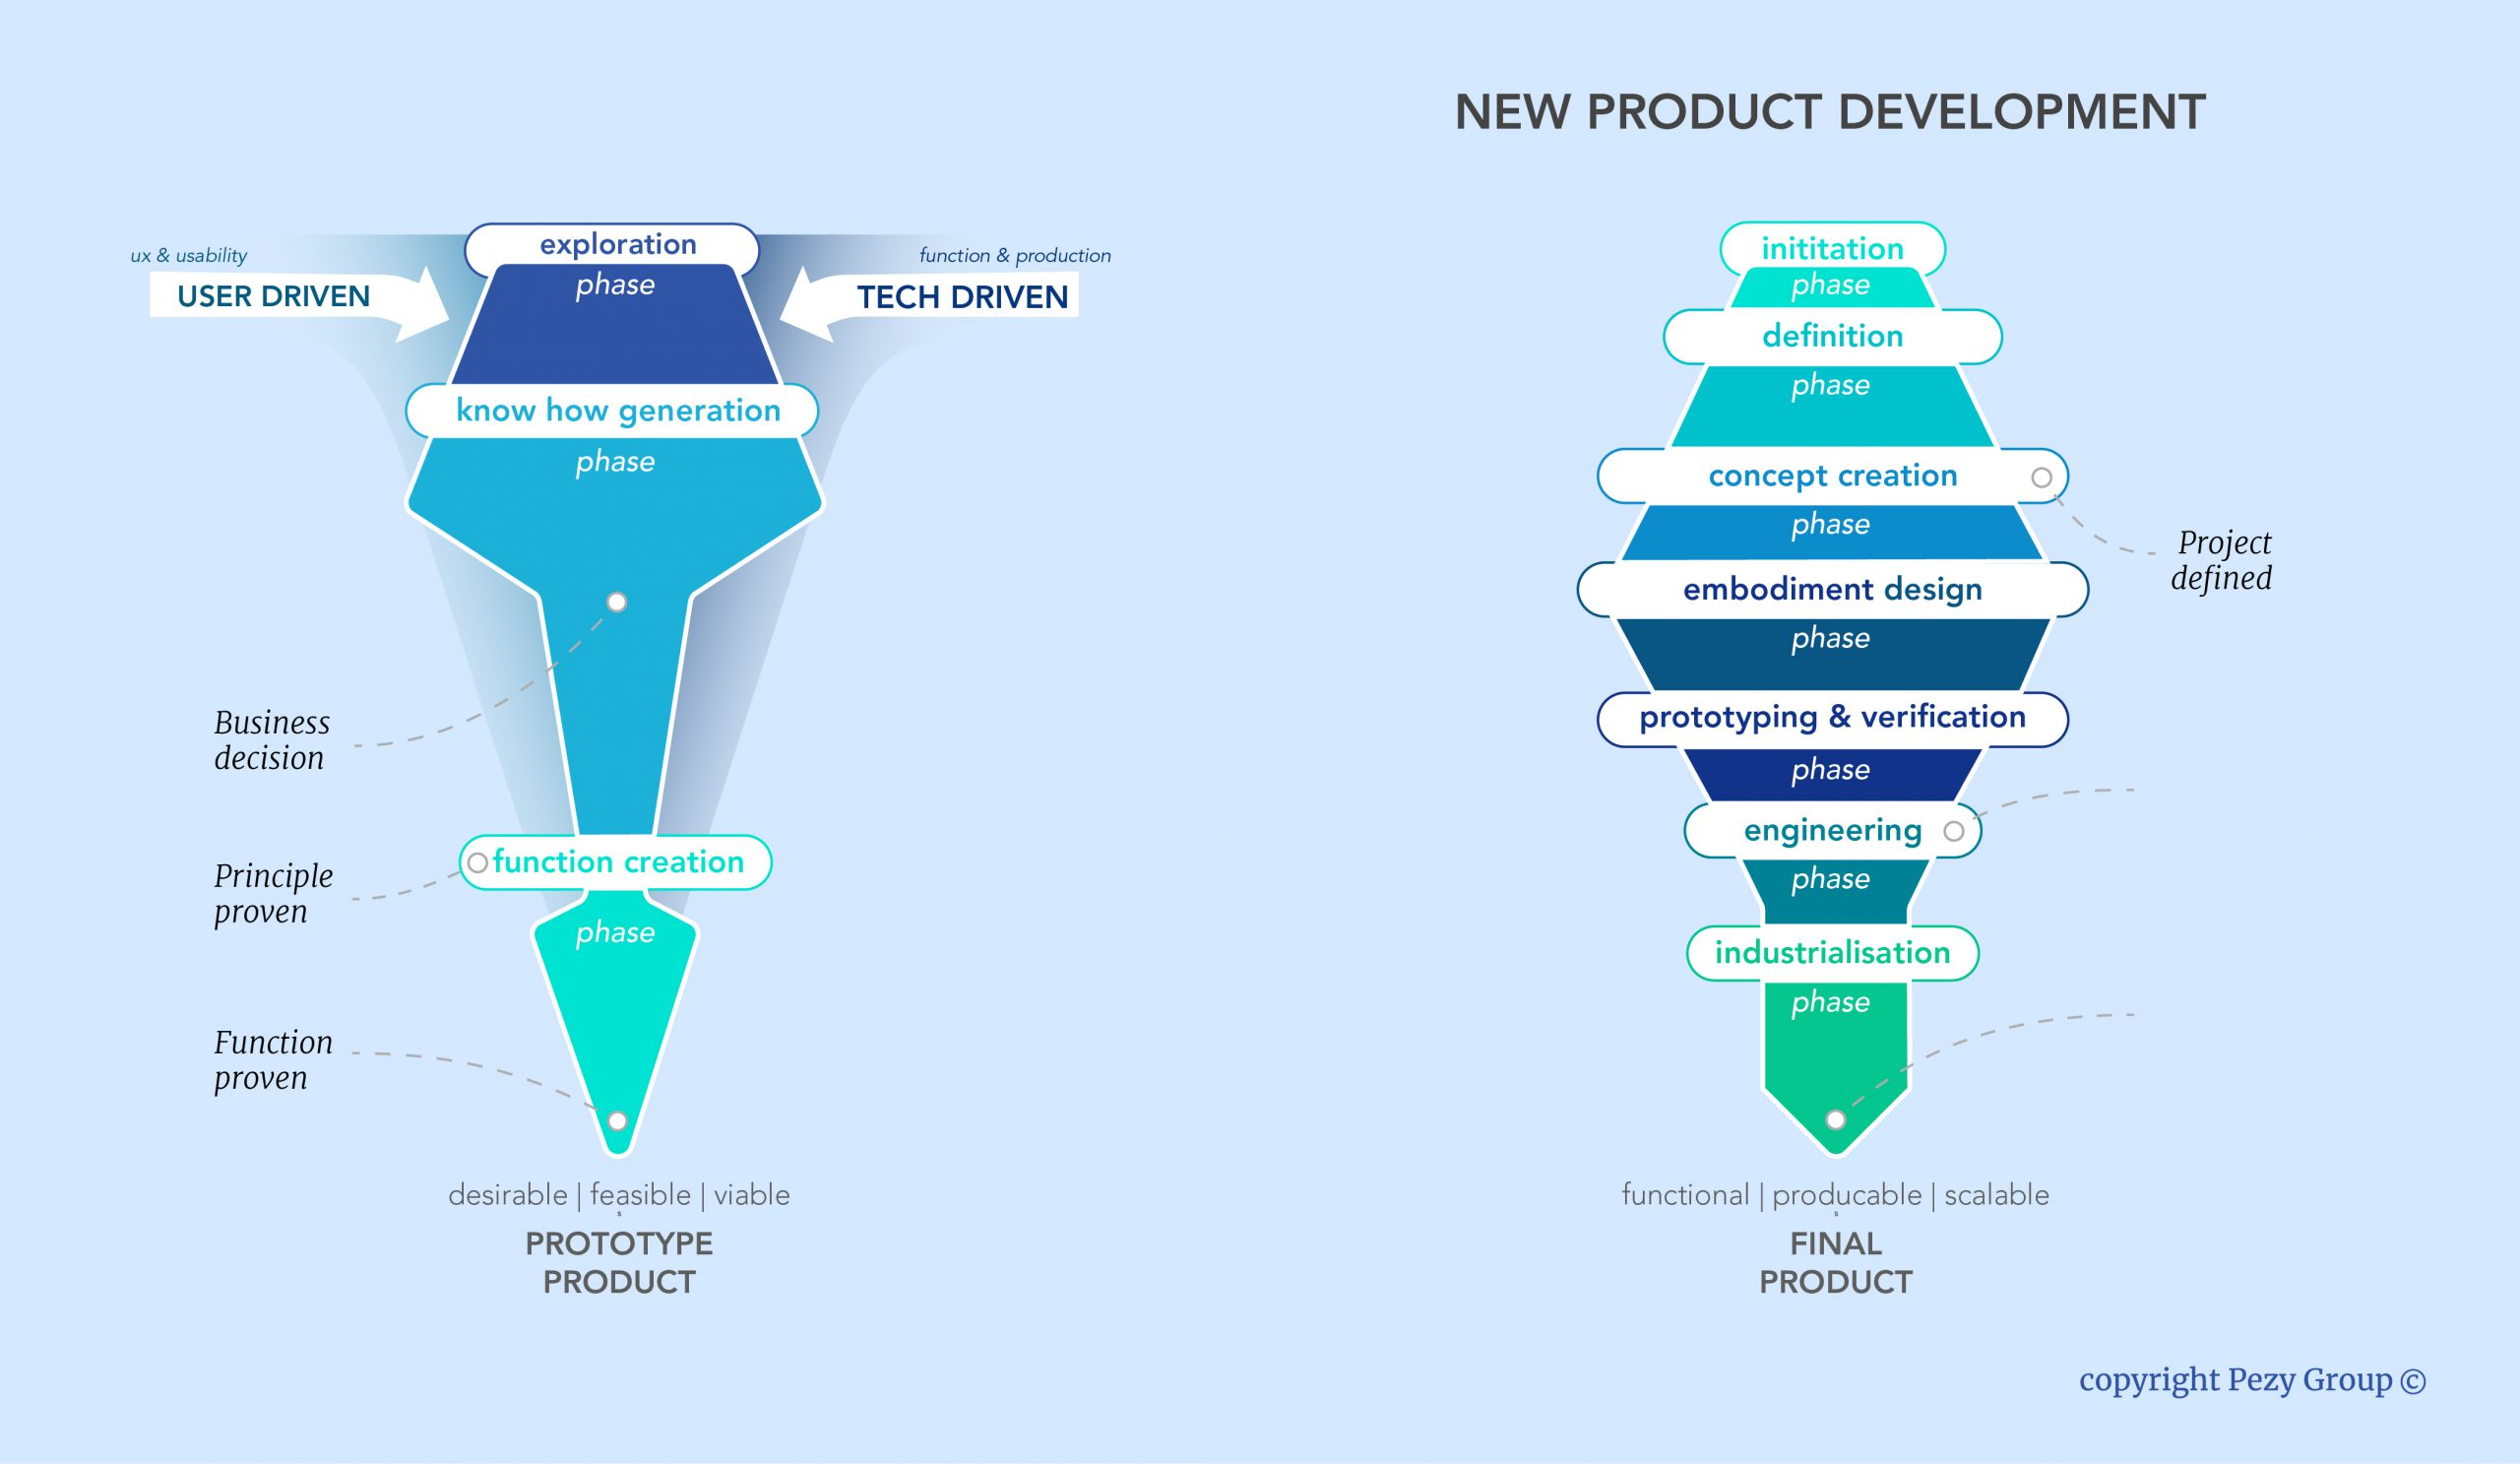 Show different phases in new product development